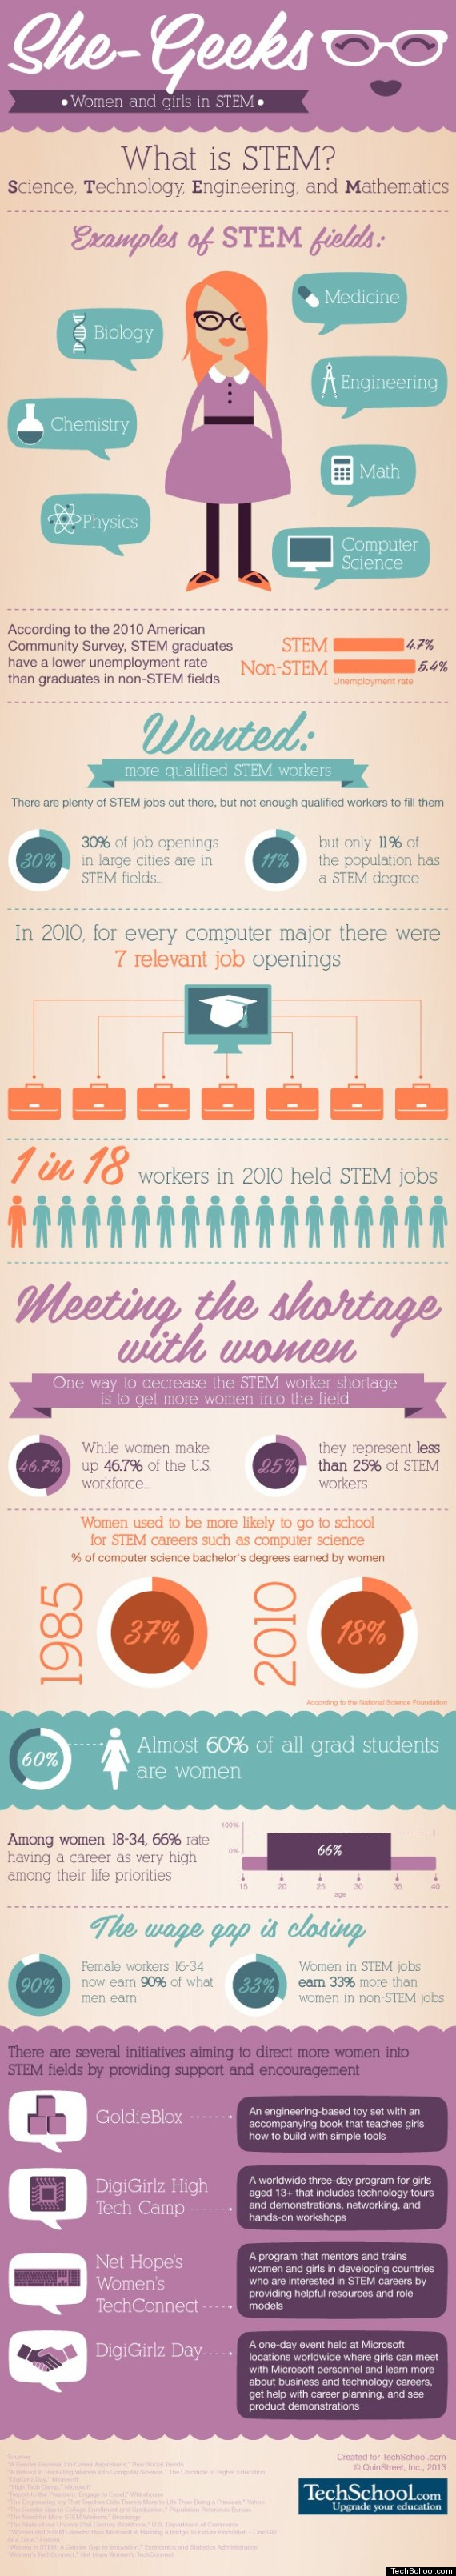 women in stem careers infographic